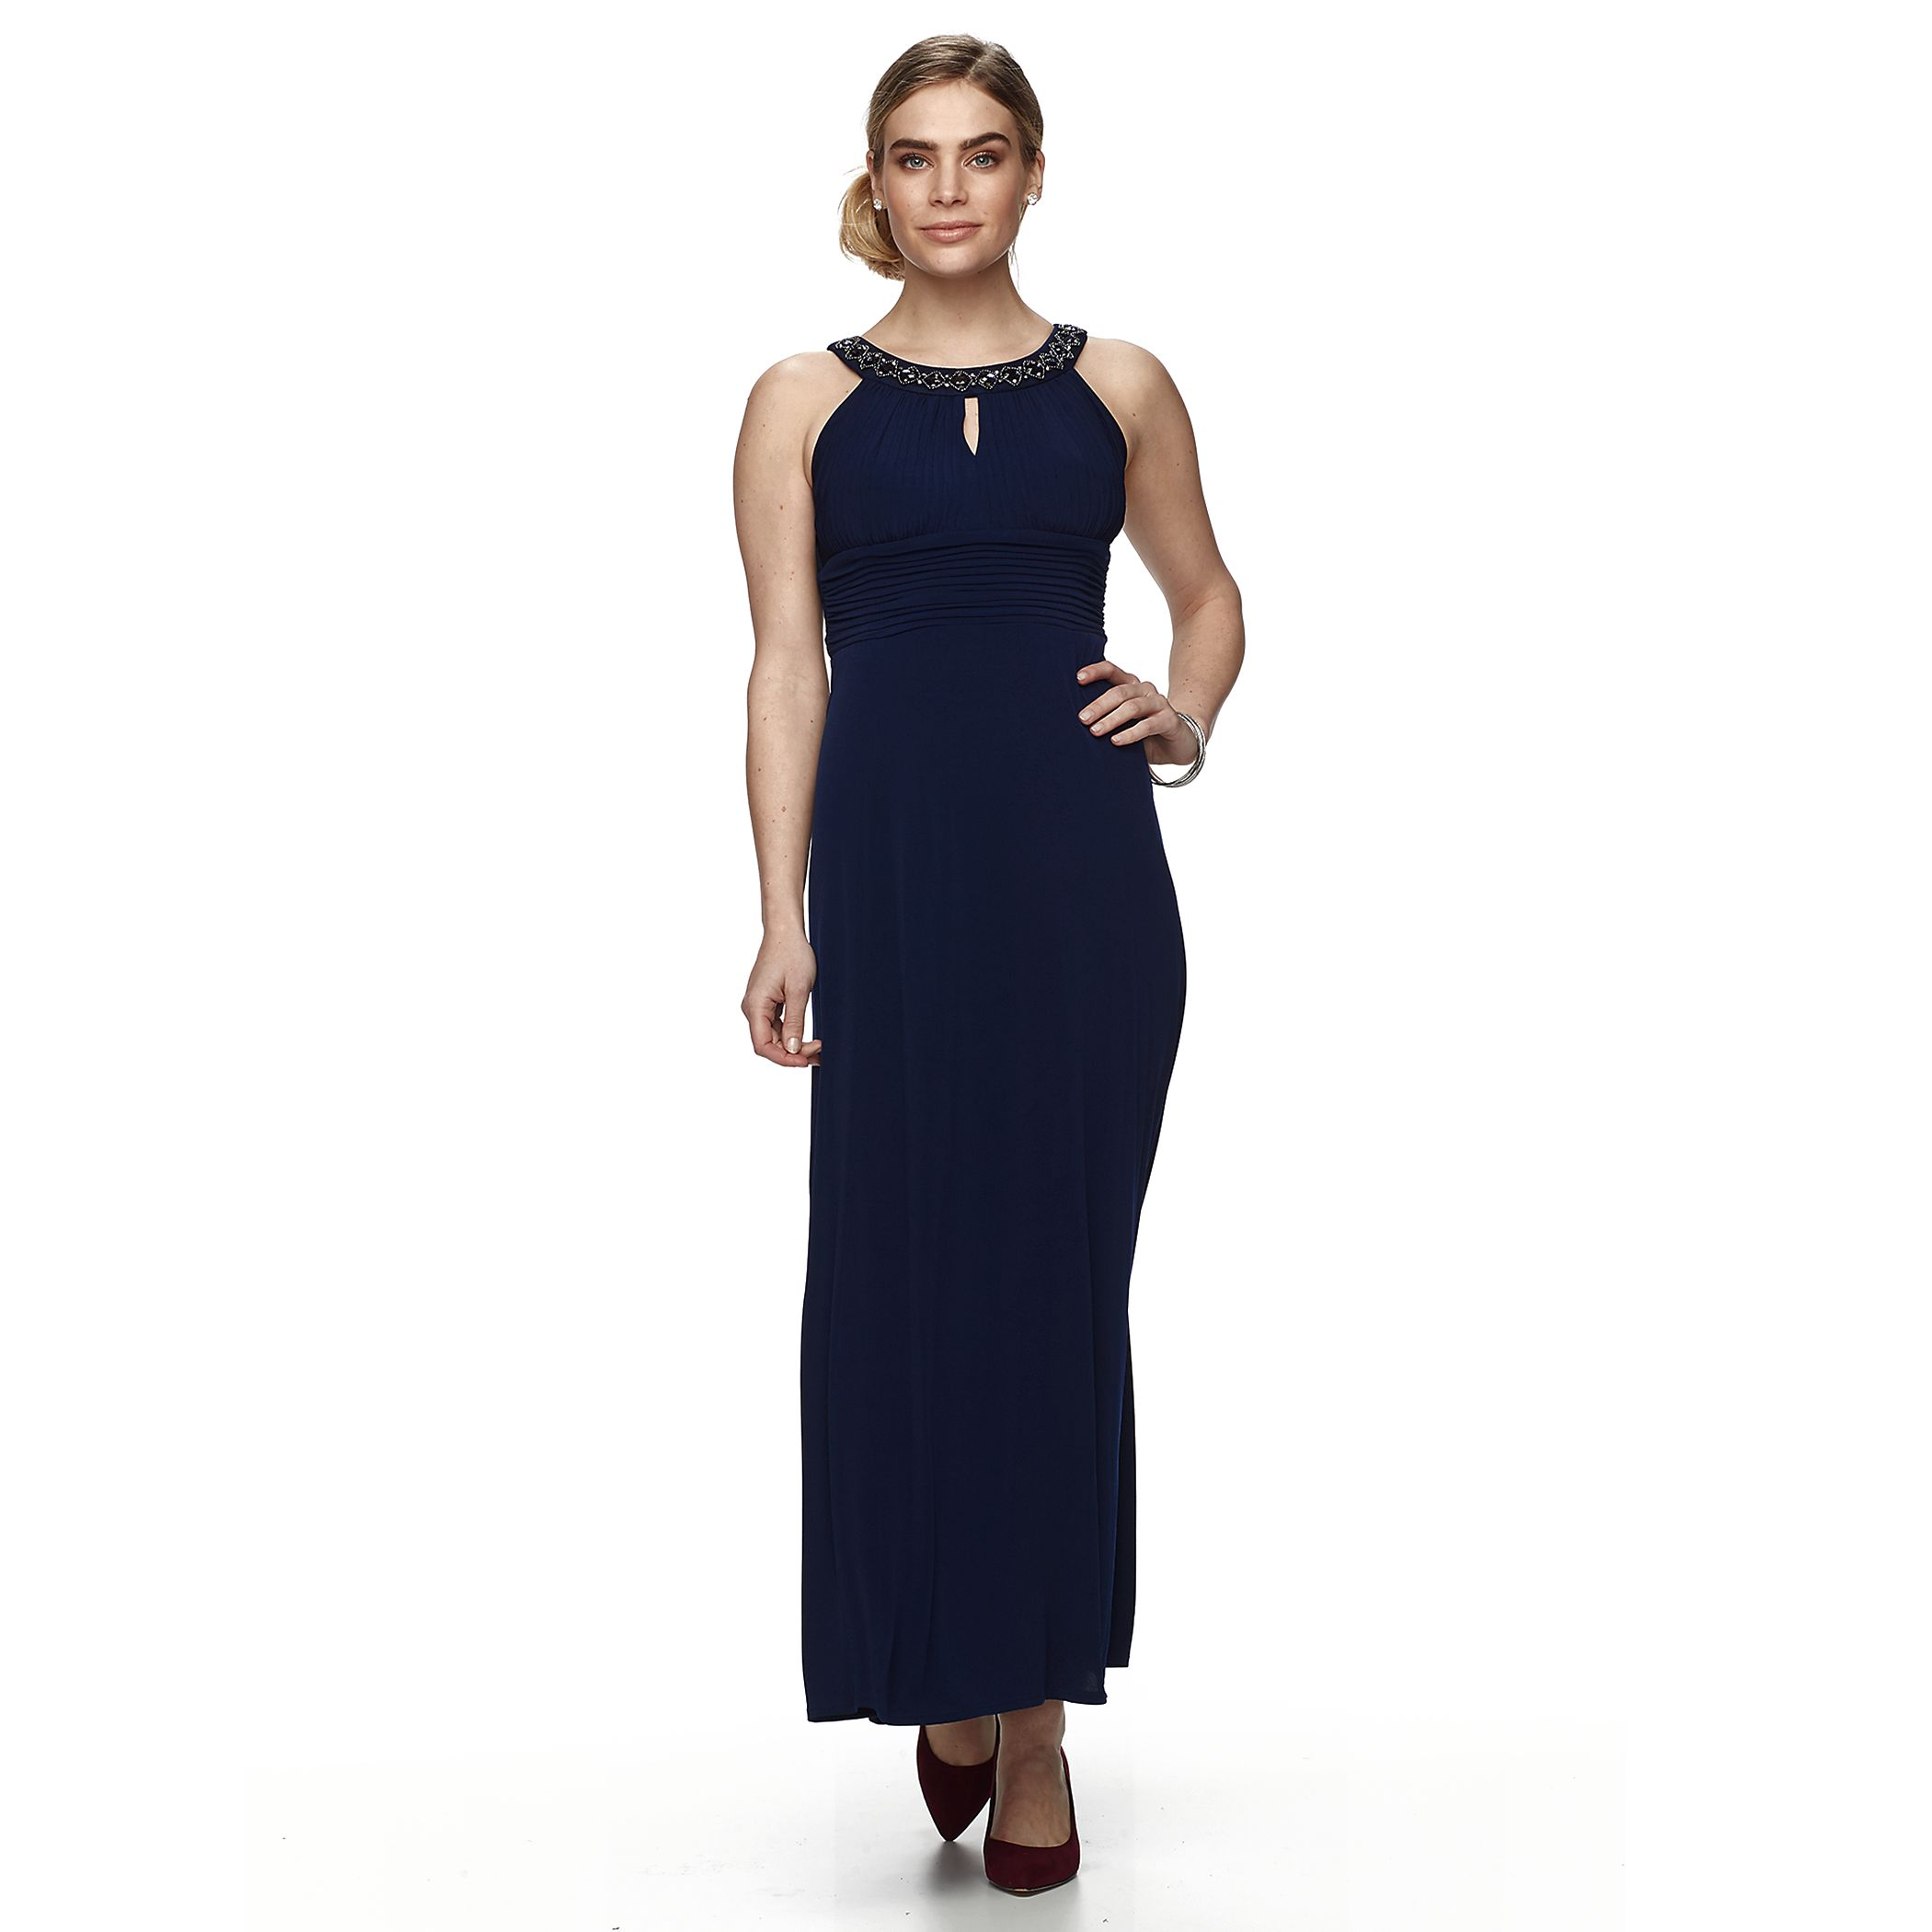 Chaya shirred empire maxi dress